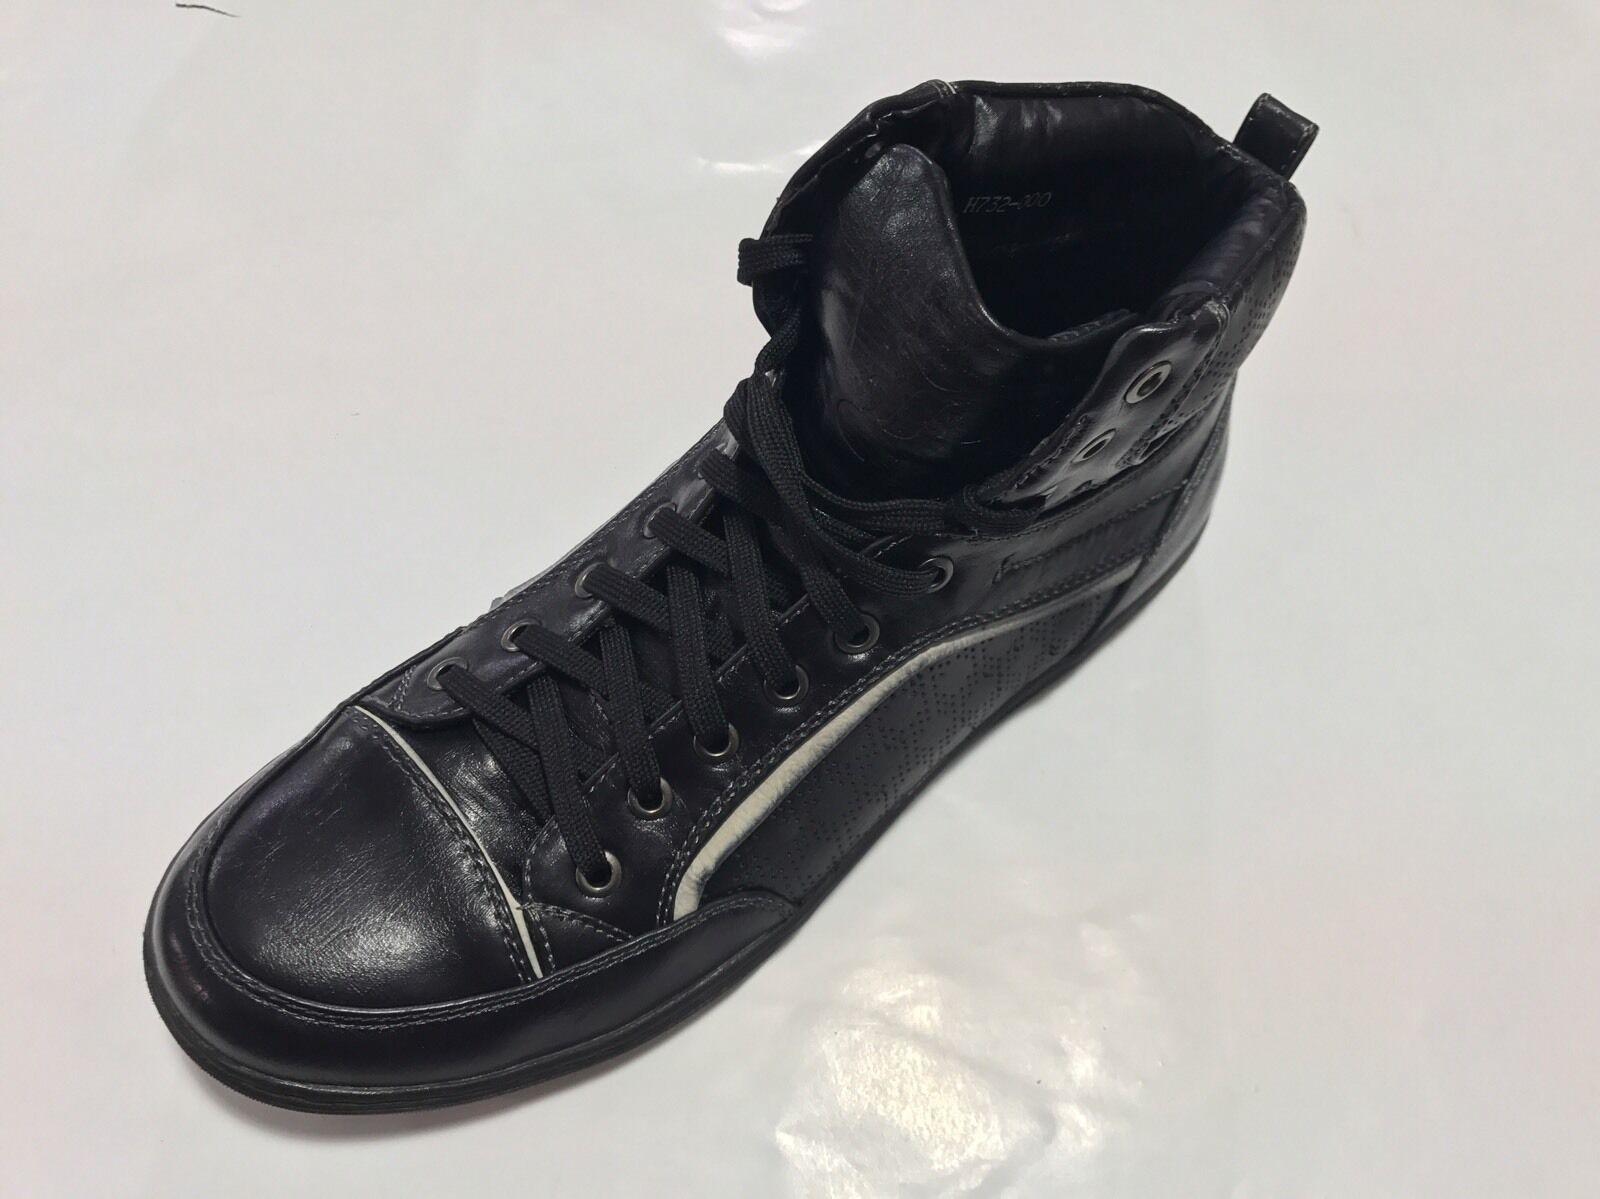 MEN'S BOHST ANKLE CASUAL BOOTS COLOR BLACK MAN MADE SOLID PATTERN